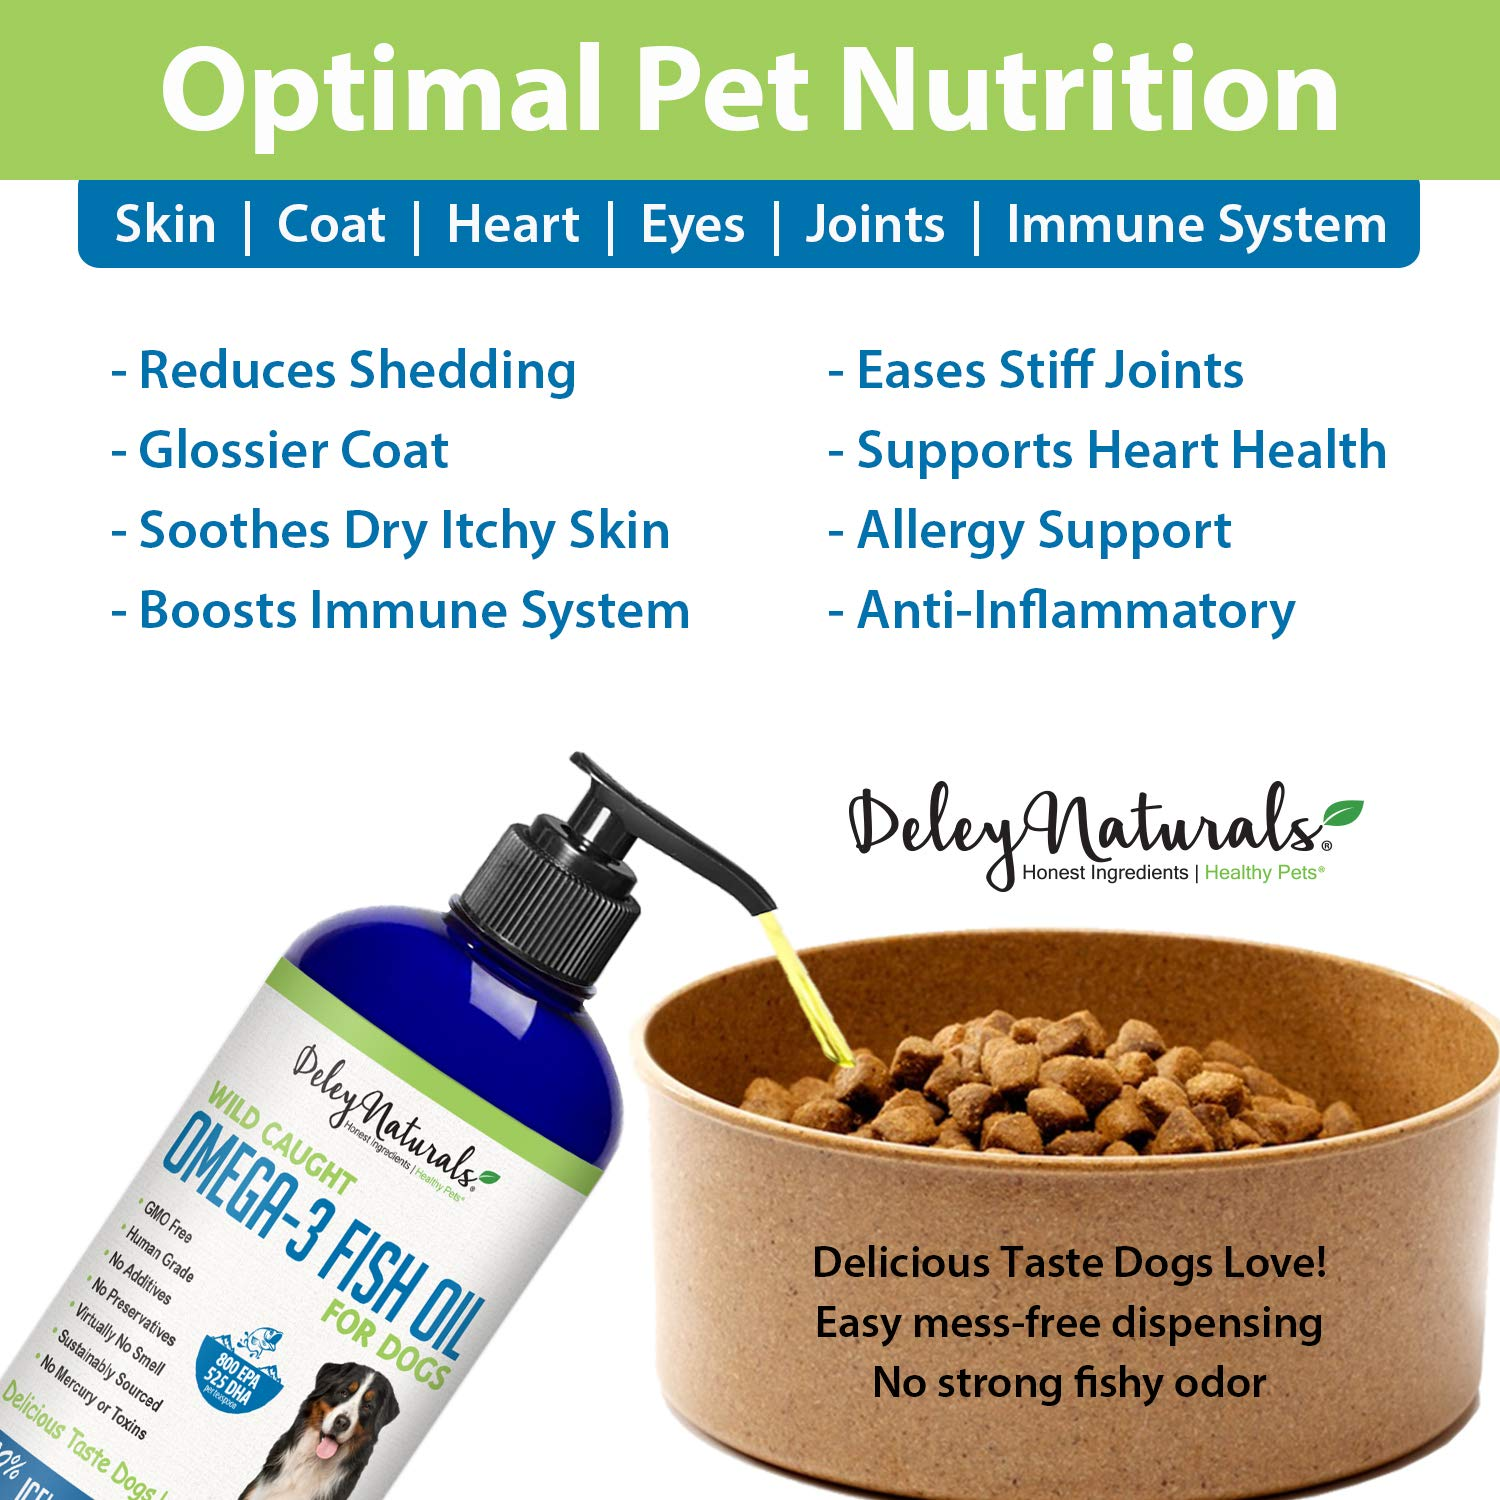 Deley Naturals Wild Caught Fish Oil for Dogs Omega 3-6-9, GMO Free Reduces Shedding, Supports Skin, Coat, Joints, Heart, Brain, Immune System Highest EPA DHA Potency Only Ingredient is Fish